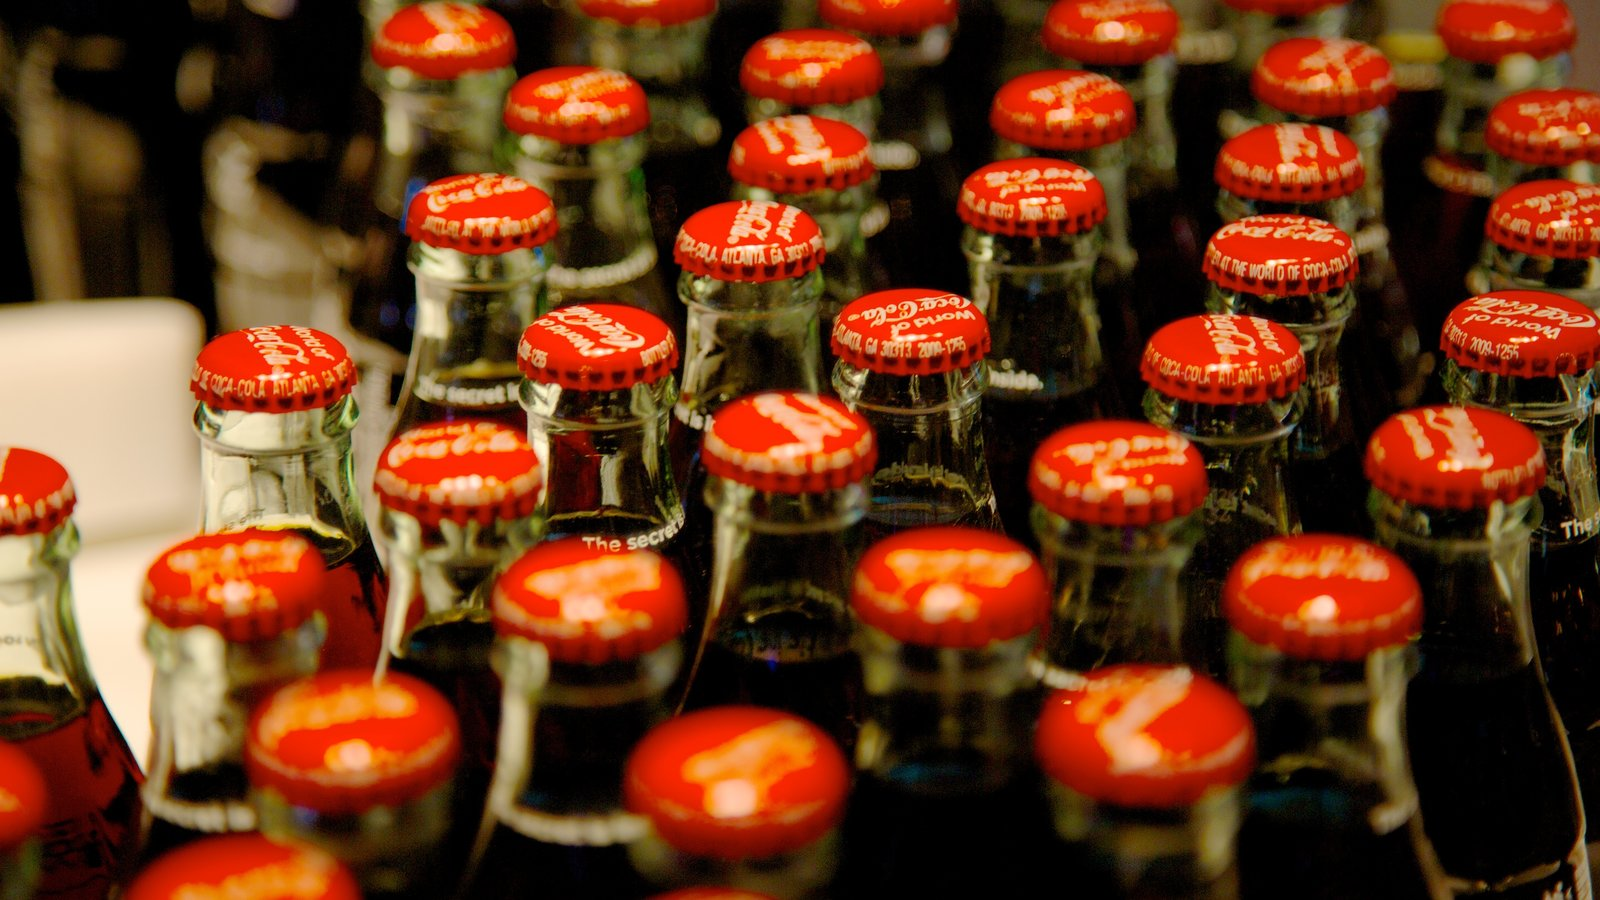 World of Coca Cola que incluye refrescos o bebidas y vistas interiores